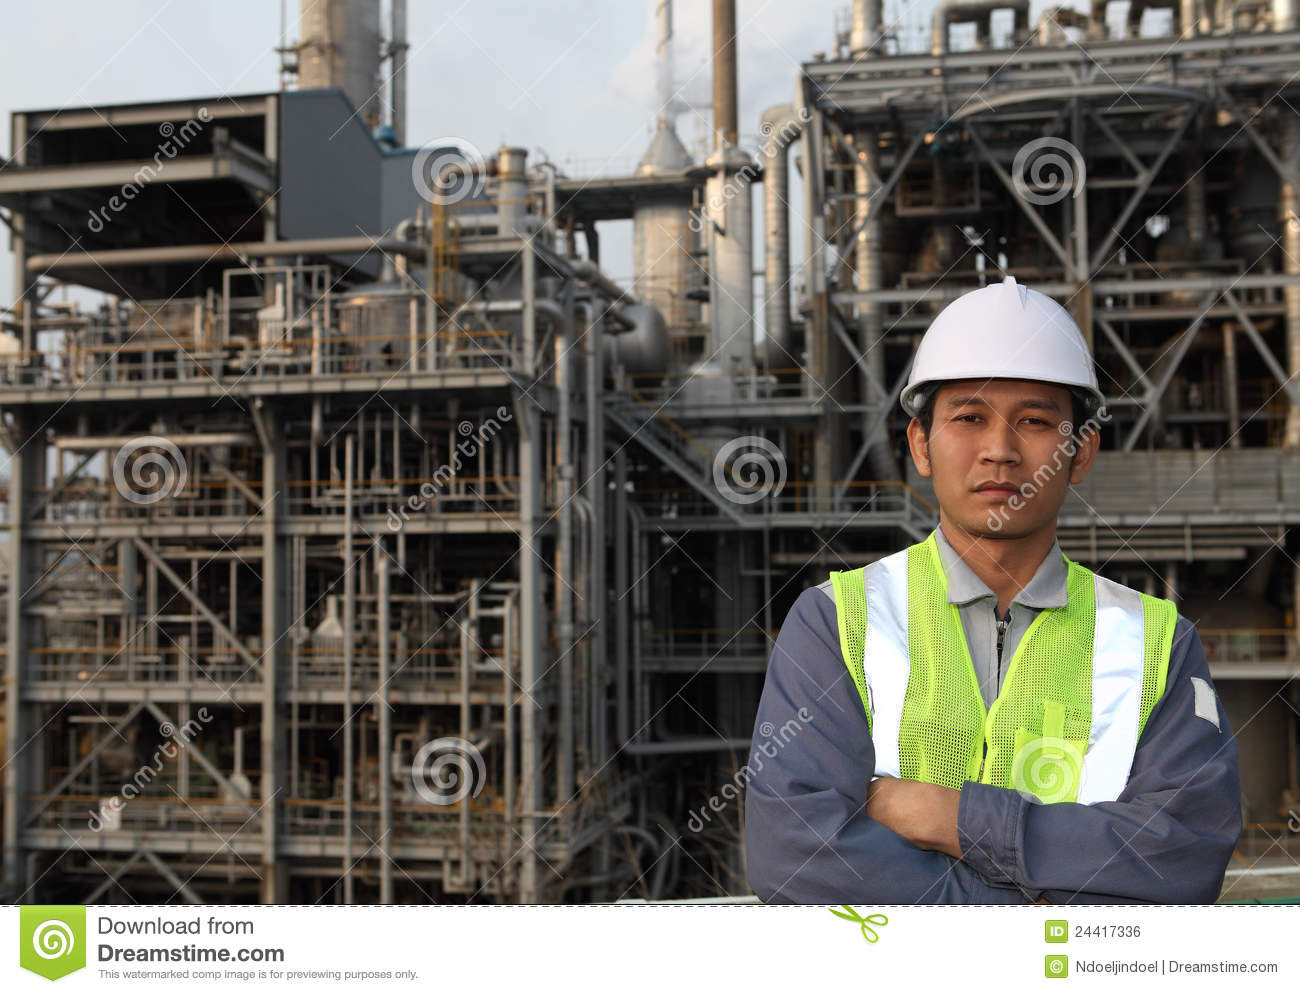 Engineer Oil Refinery Royalty Free Stock Image - Image: 24417336